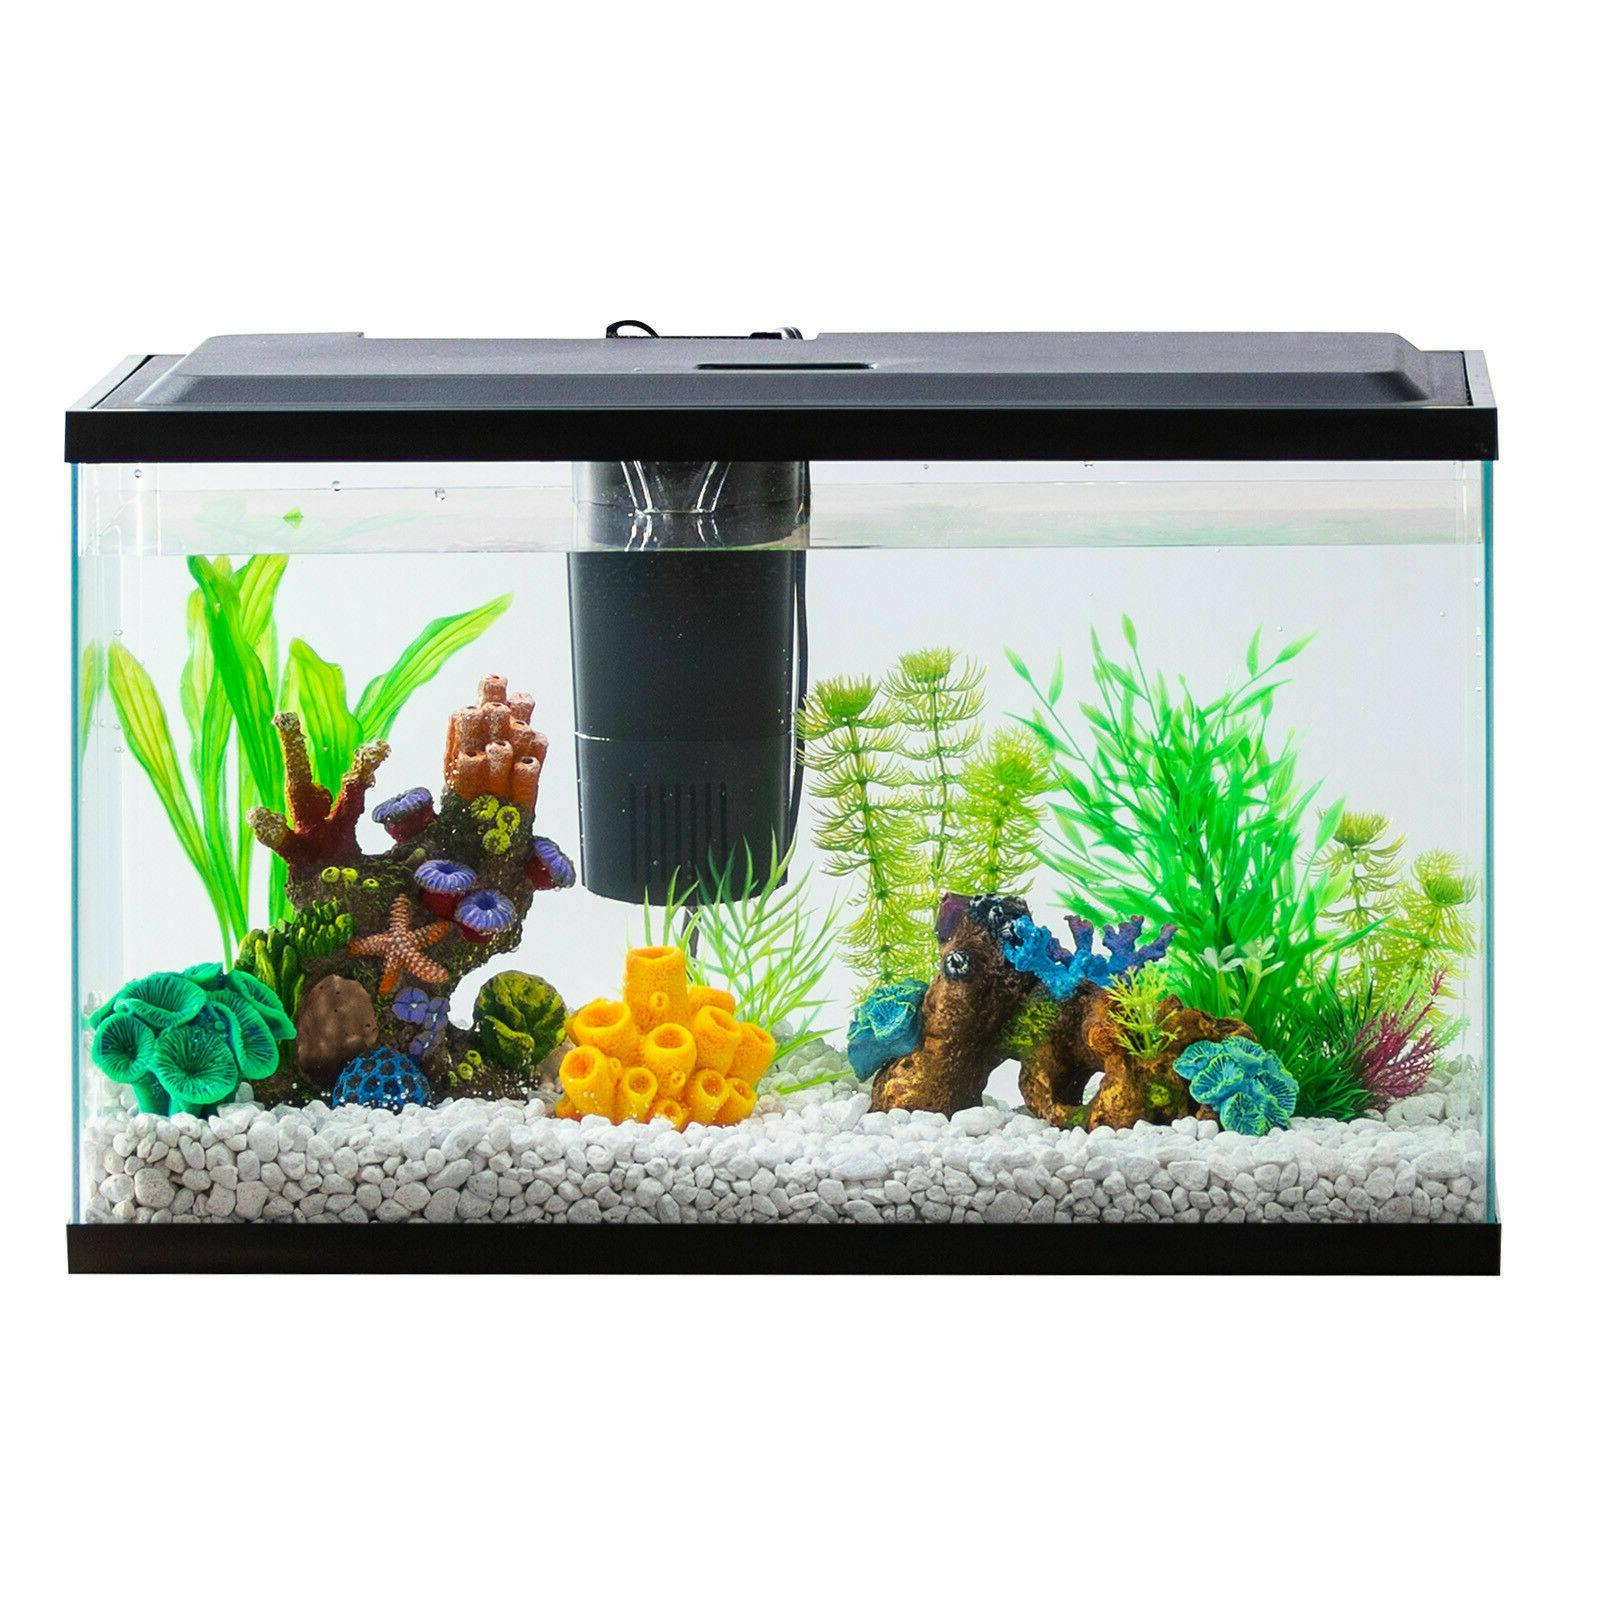 10 Gallon Aquarium Kit Set Fish Light Fresh Water New